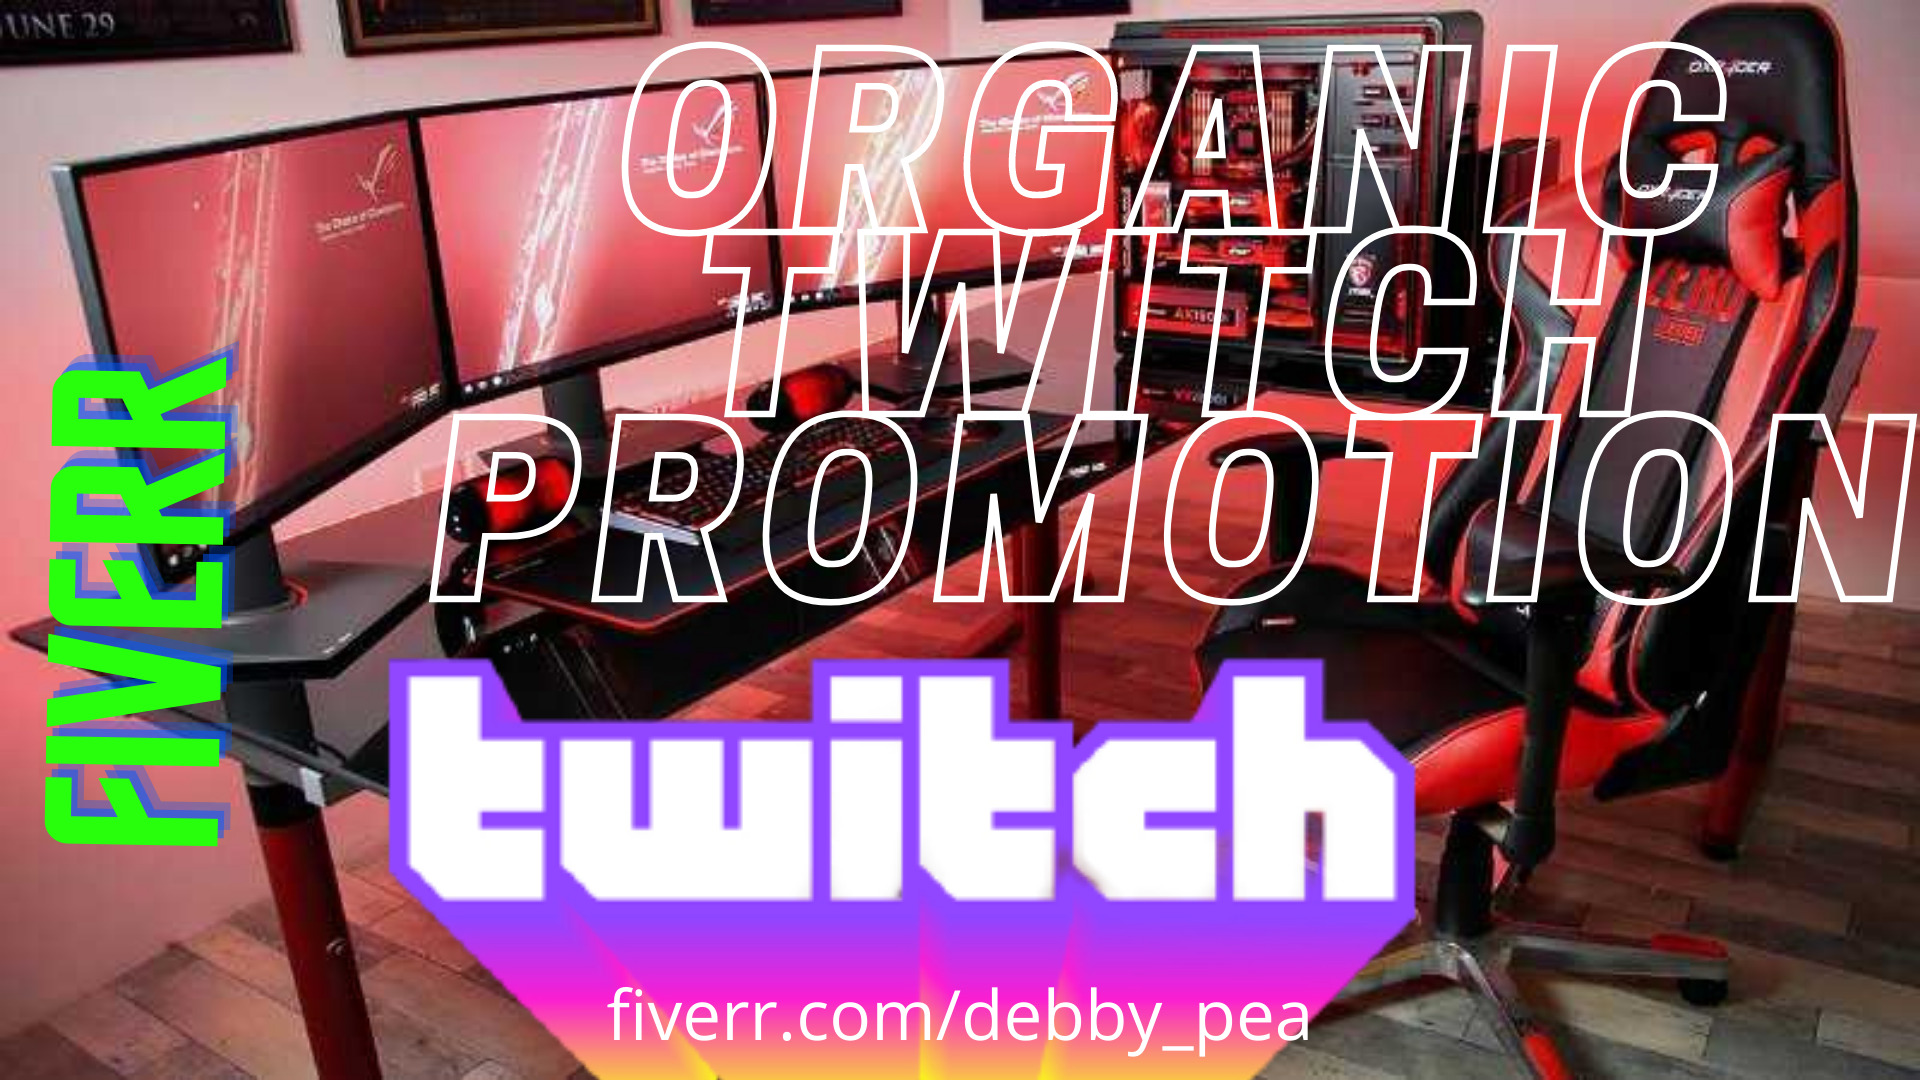 I will do organic twitch promotion to twitch traffic to gain real and organic audience, FiverrBox